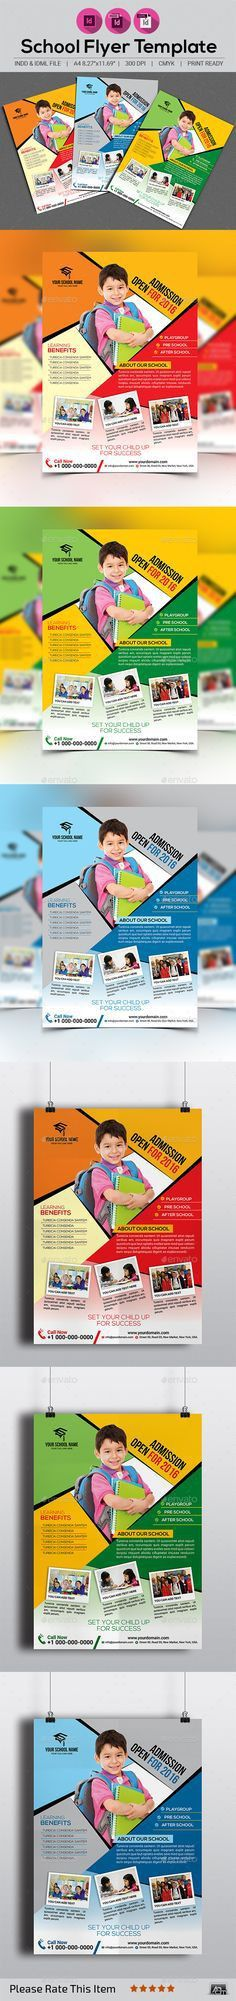 School Flyer | Ai illustrator, Flyer template and Brochures